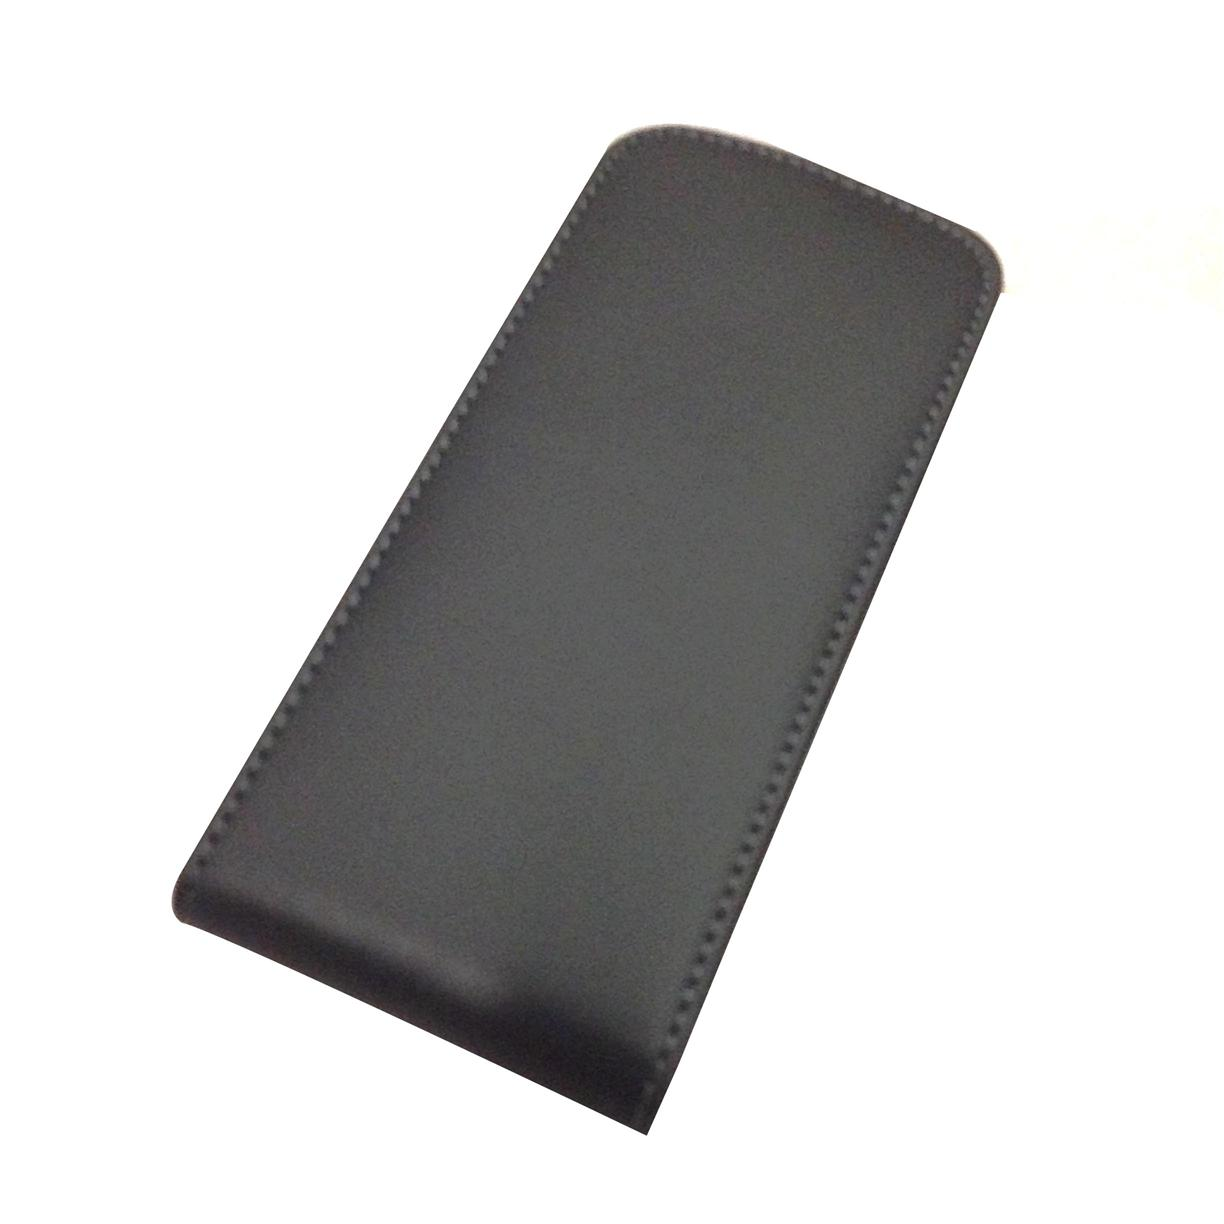 Flip down case for iPhone 5 / iPhone 5s - Black